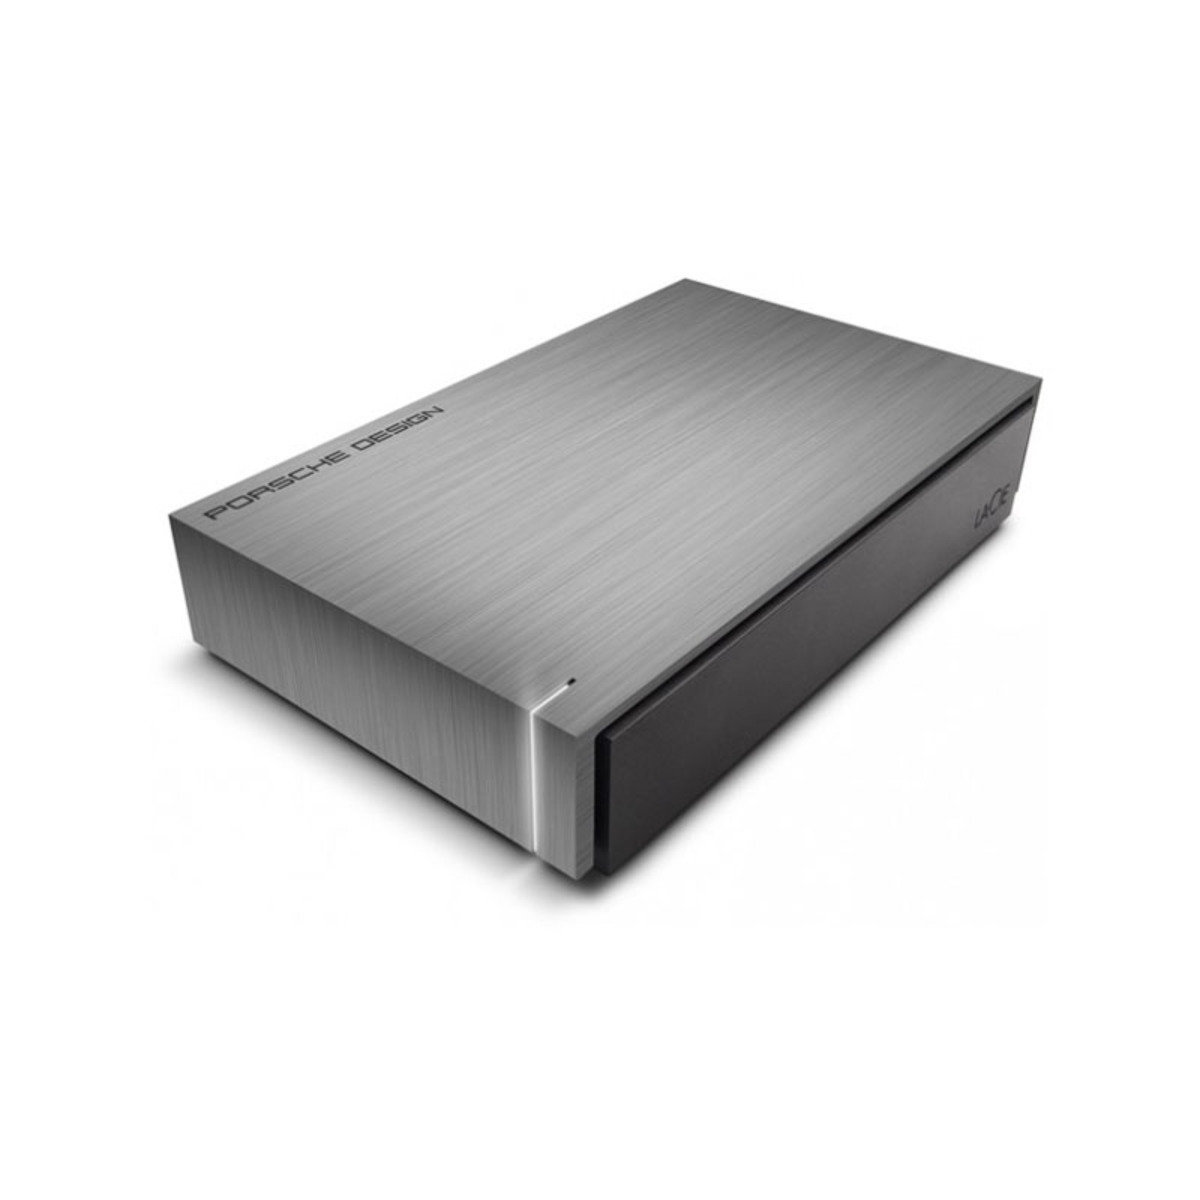 Porsche Design Desk 8TB USB3.0 3.5吋 外置硬碟 9000604